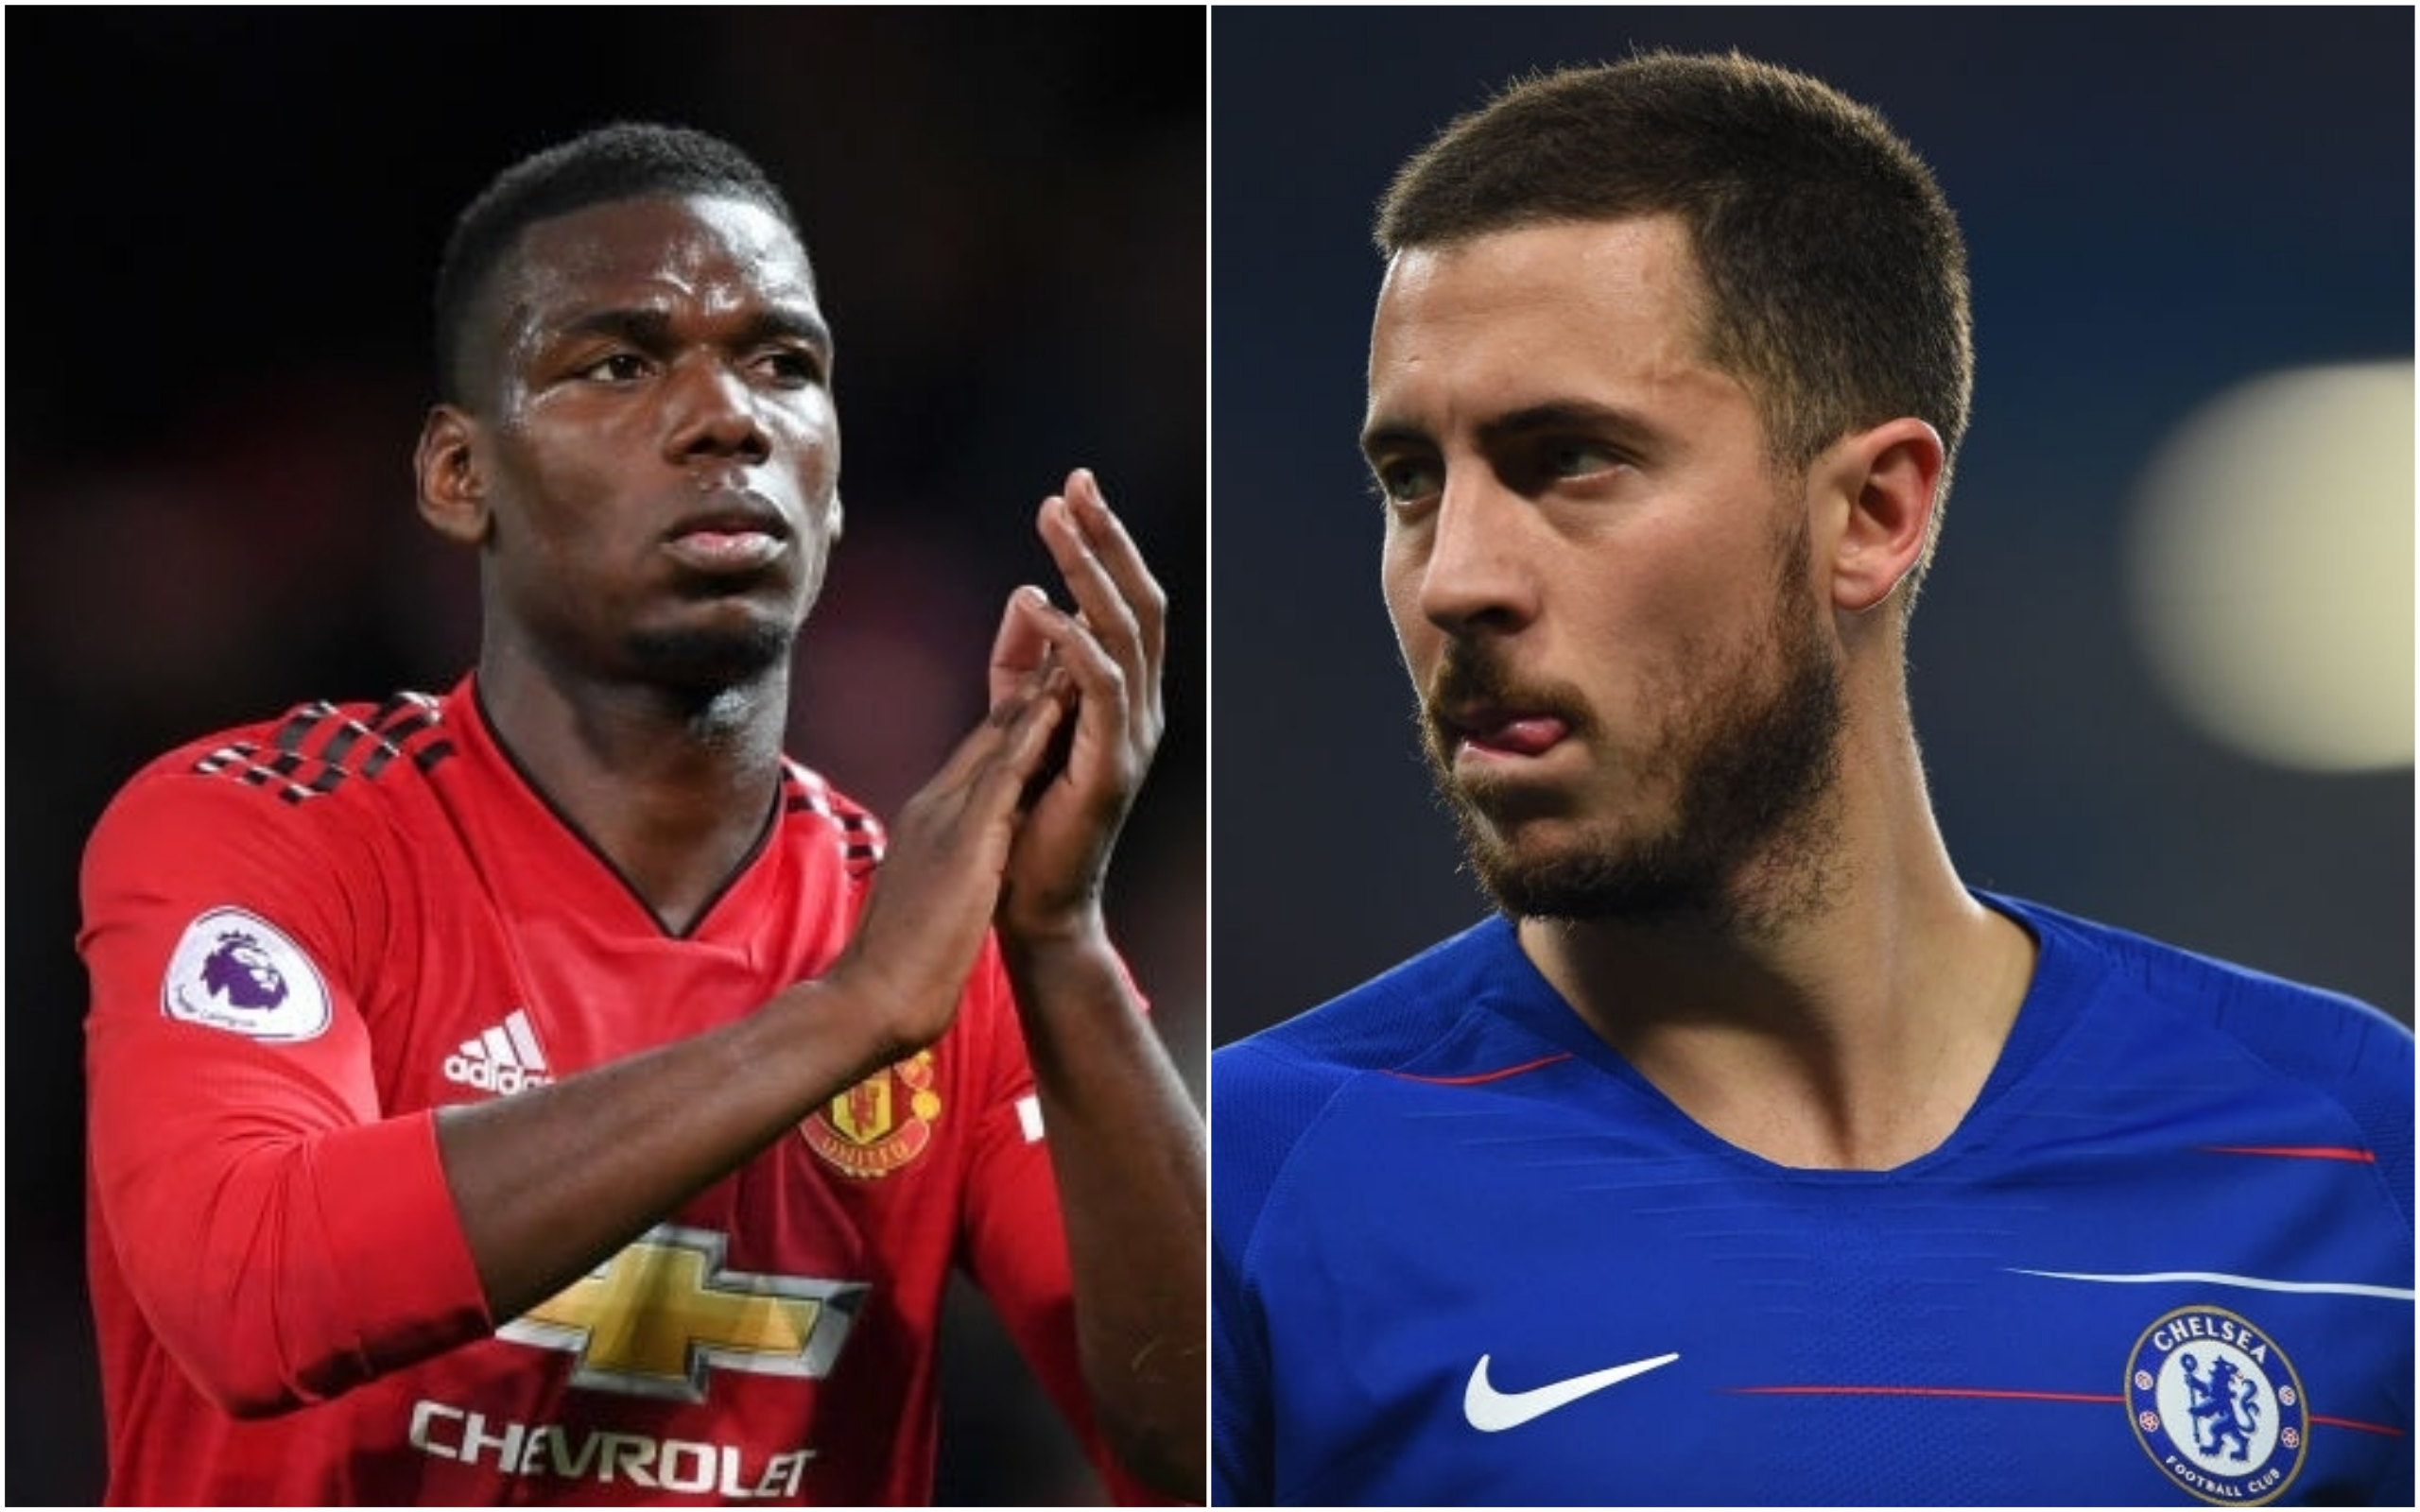 Paul Pogba made the PFA Team of the Year but Eden Hazard missed out